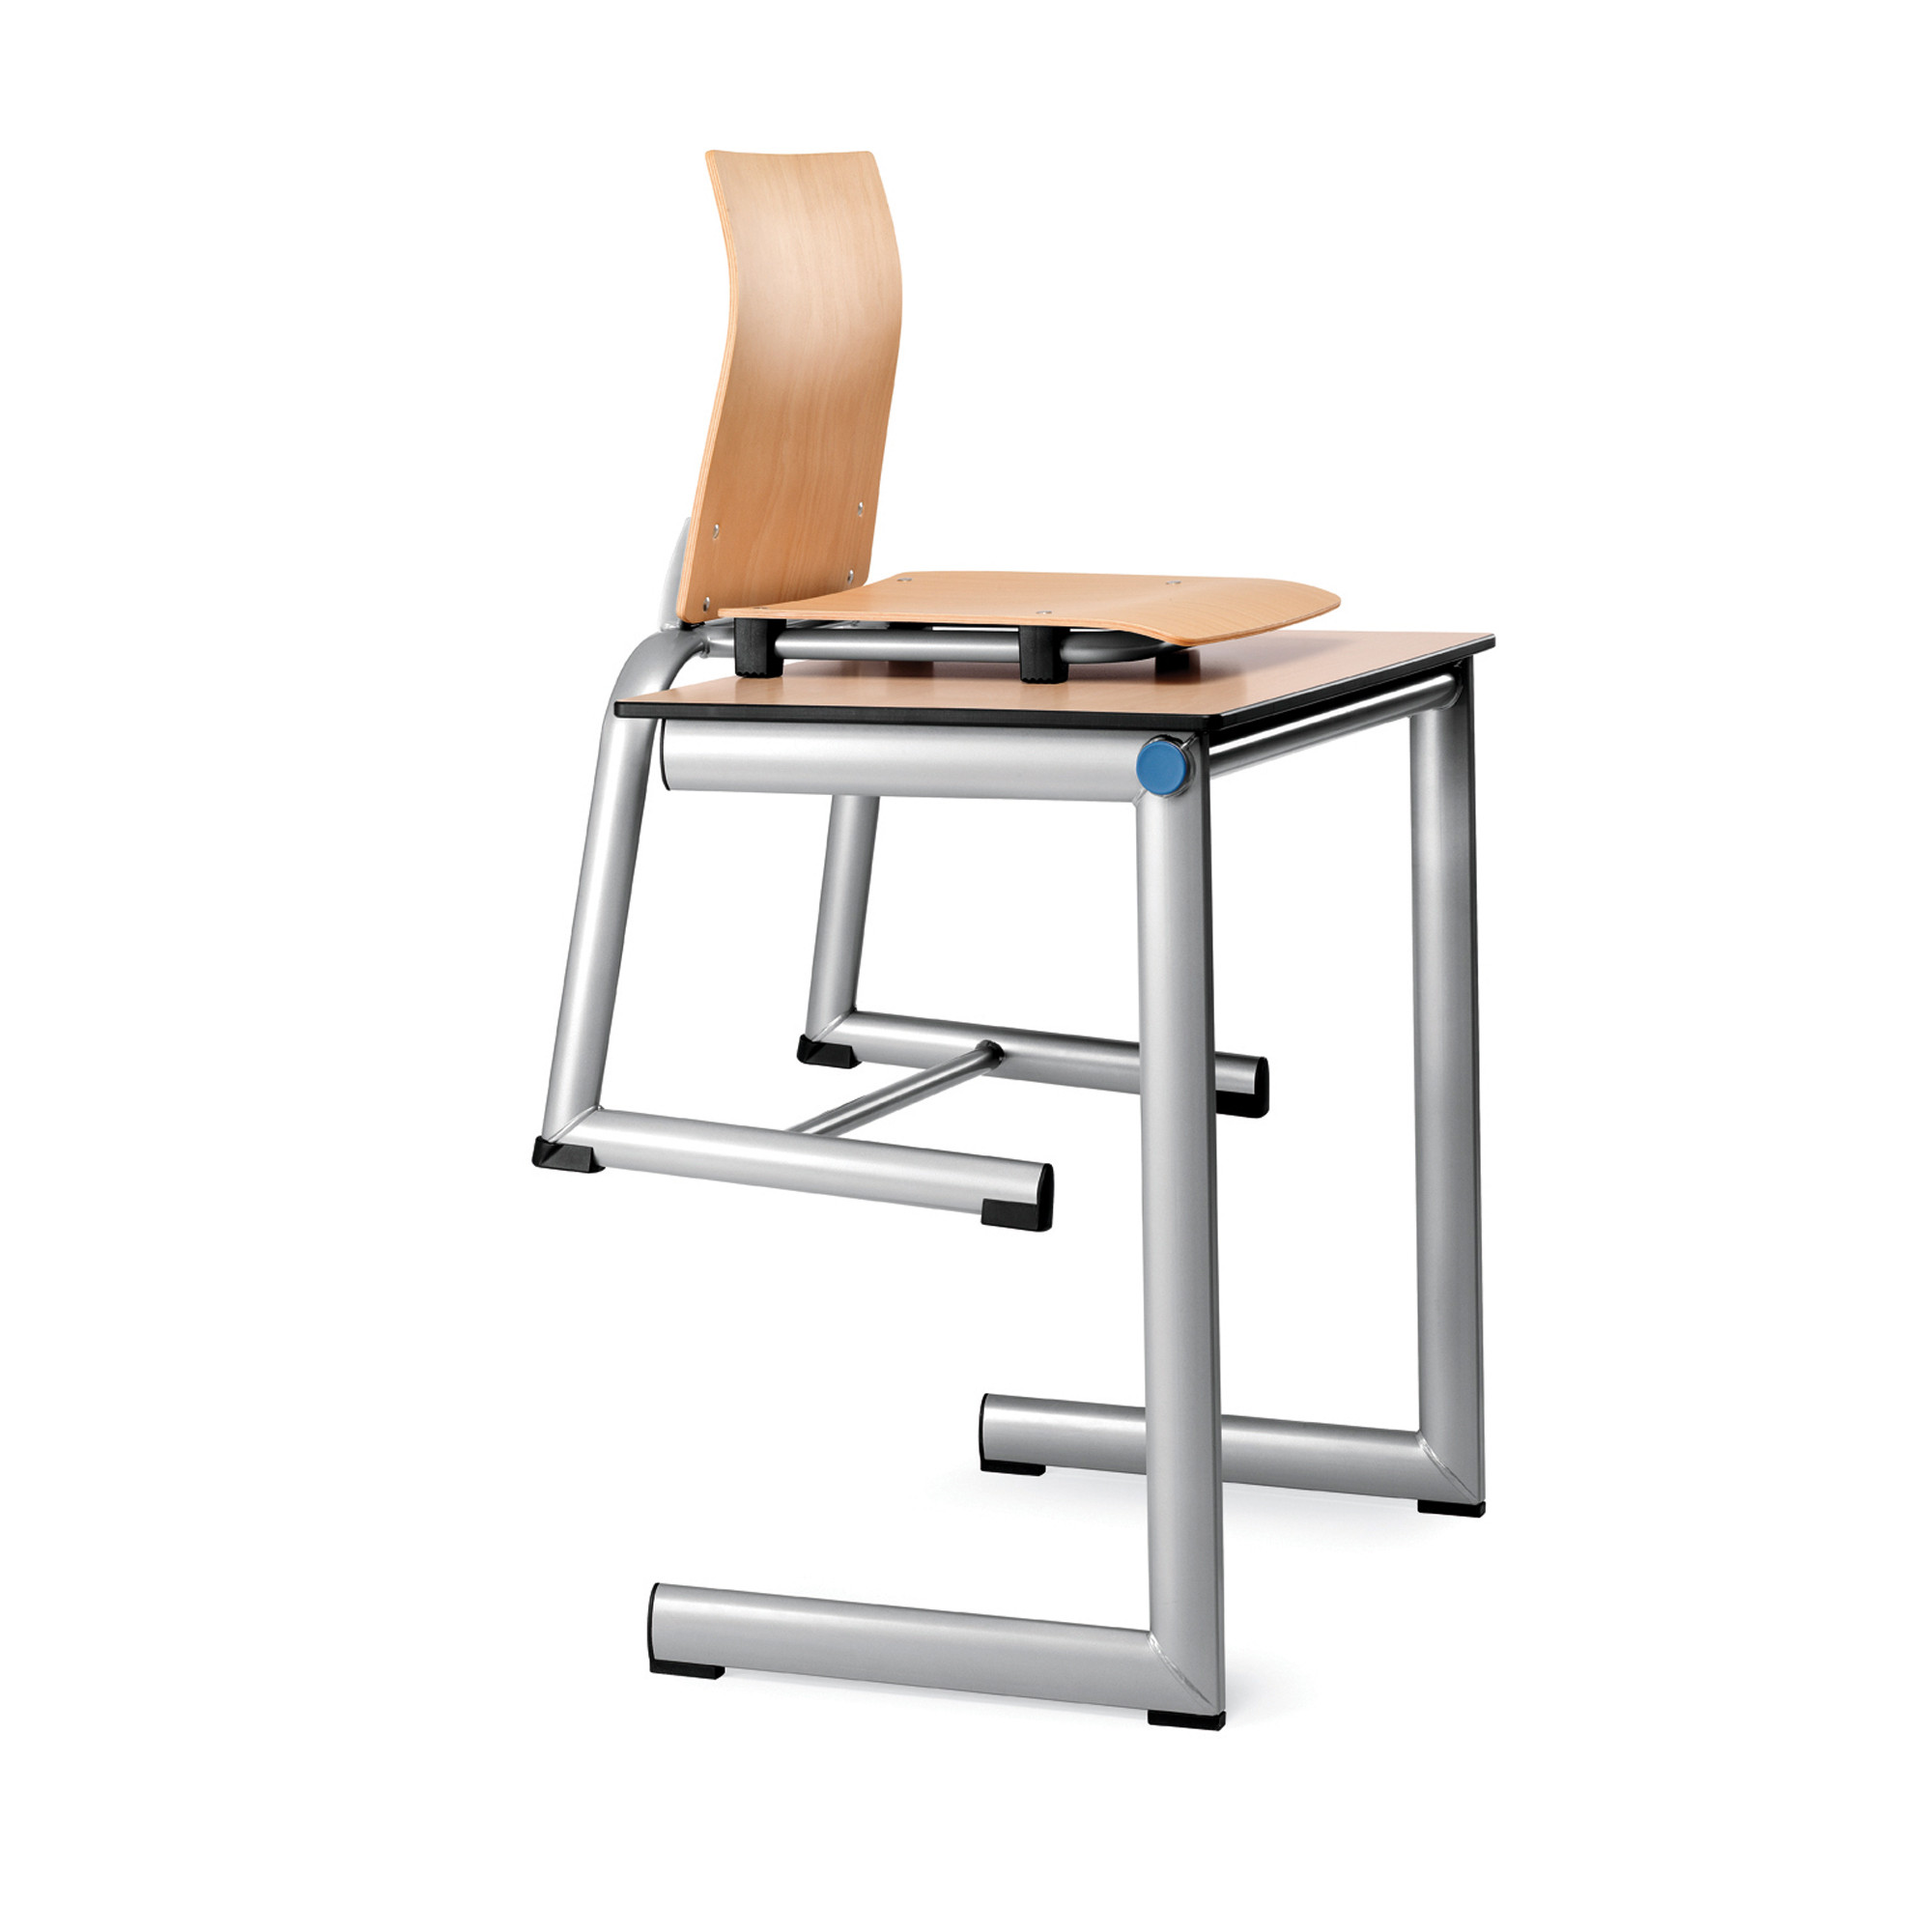 Ahrend 452 School Desks